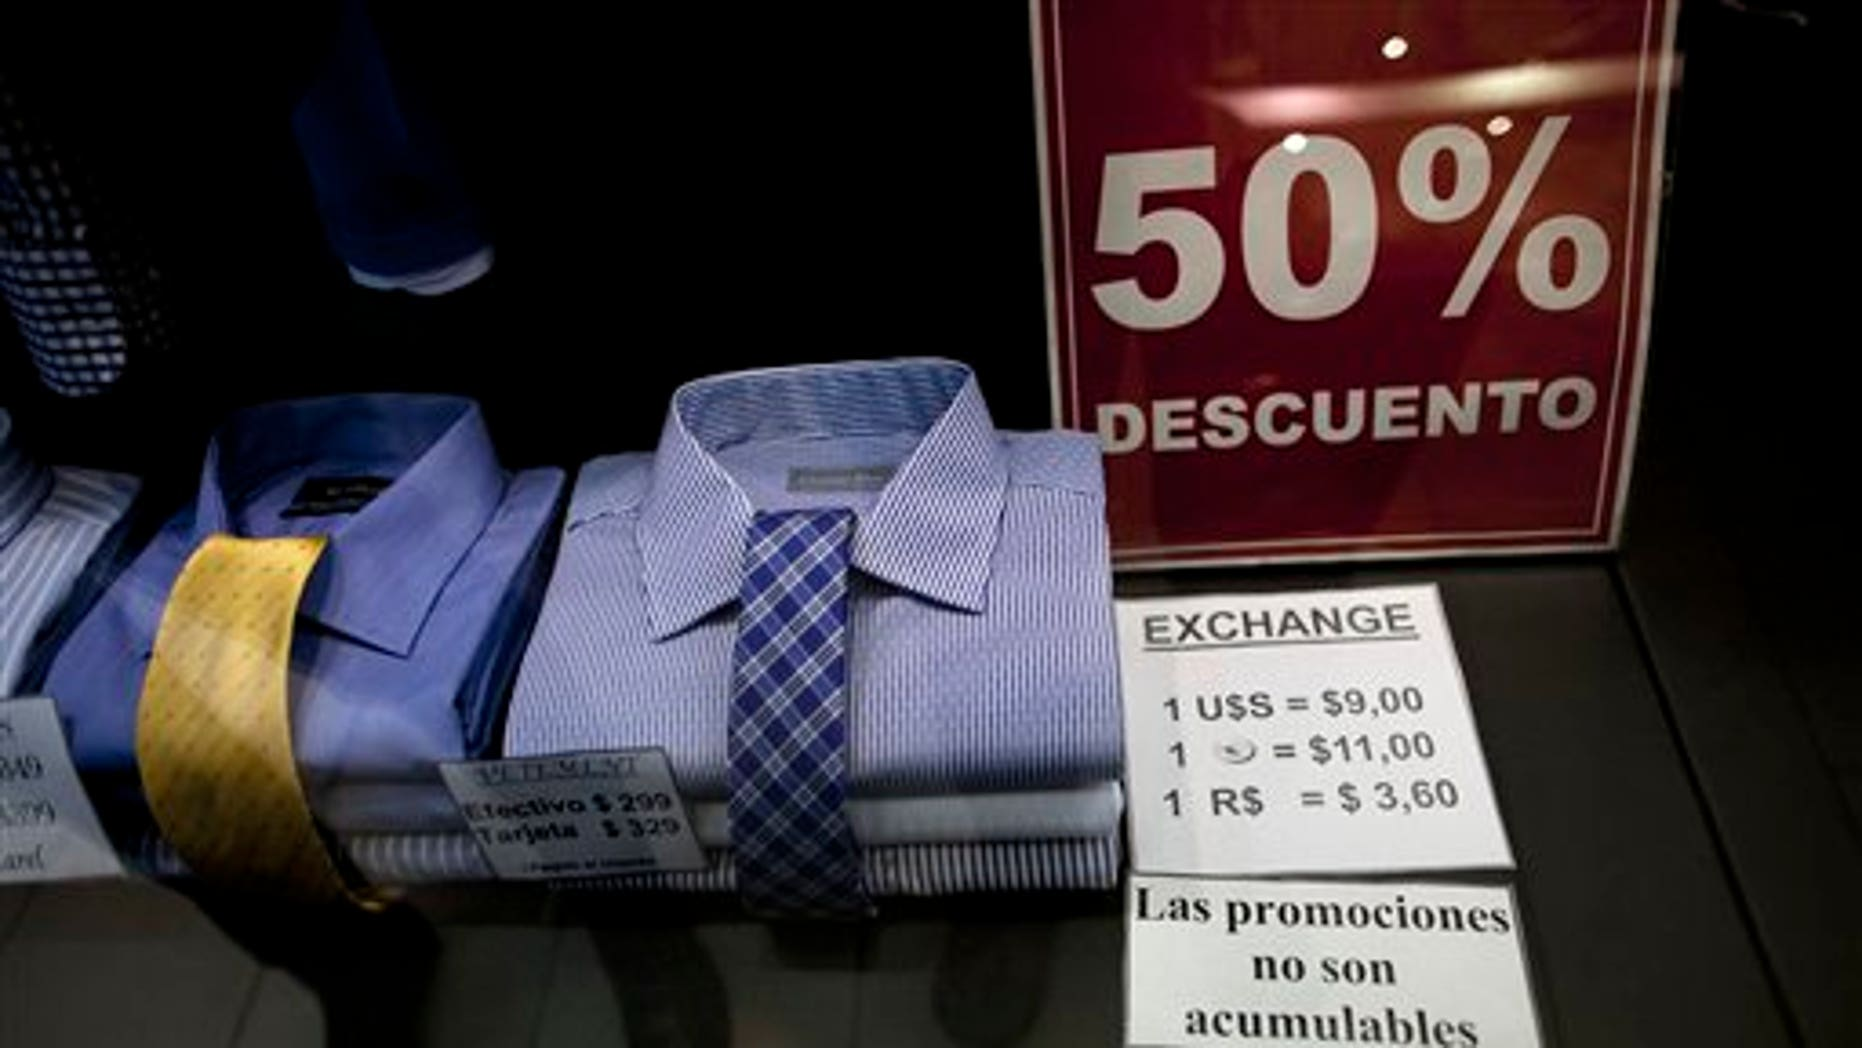 """In this June 5, 2013 photo, a shop window displays a sign that reads in Spanish """"50% discount"""" as well as the store's accepted rates of exchange in the informal market for the Argentine peso with the US dollar, the euro, and Brazil's real, along Florida street in Buenos Aires, Argentina. The weakening peso has led to a flood of day-trippers from neighboring countries into Argentina, which imposed severe currency controls in hopes of reducing the flight of dollars and protecting foreign reserves. (AP Photo/Natacha Pisarenko)"""